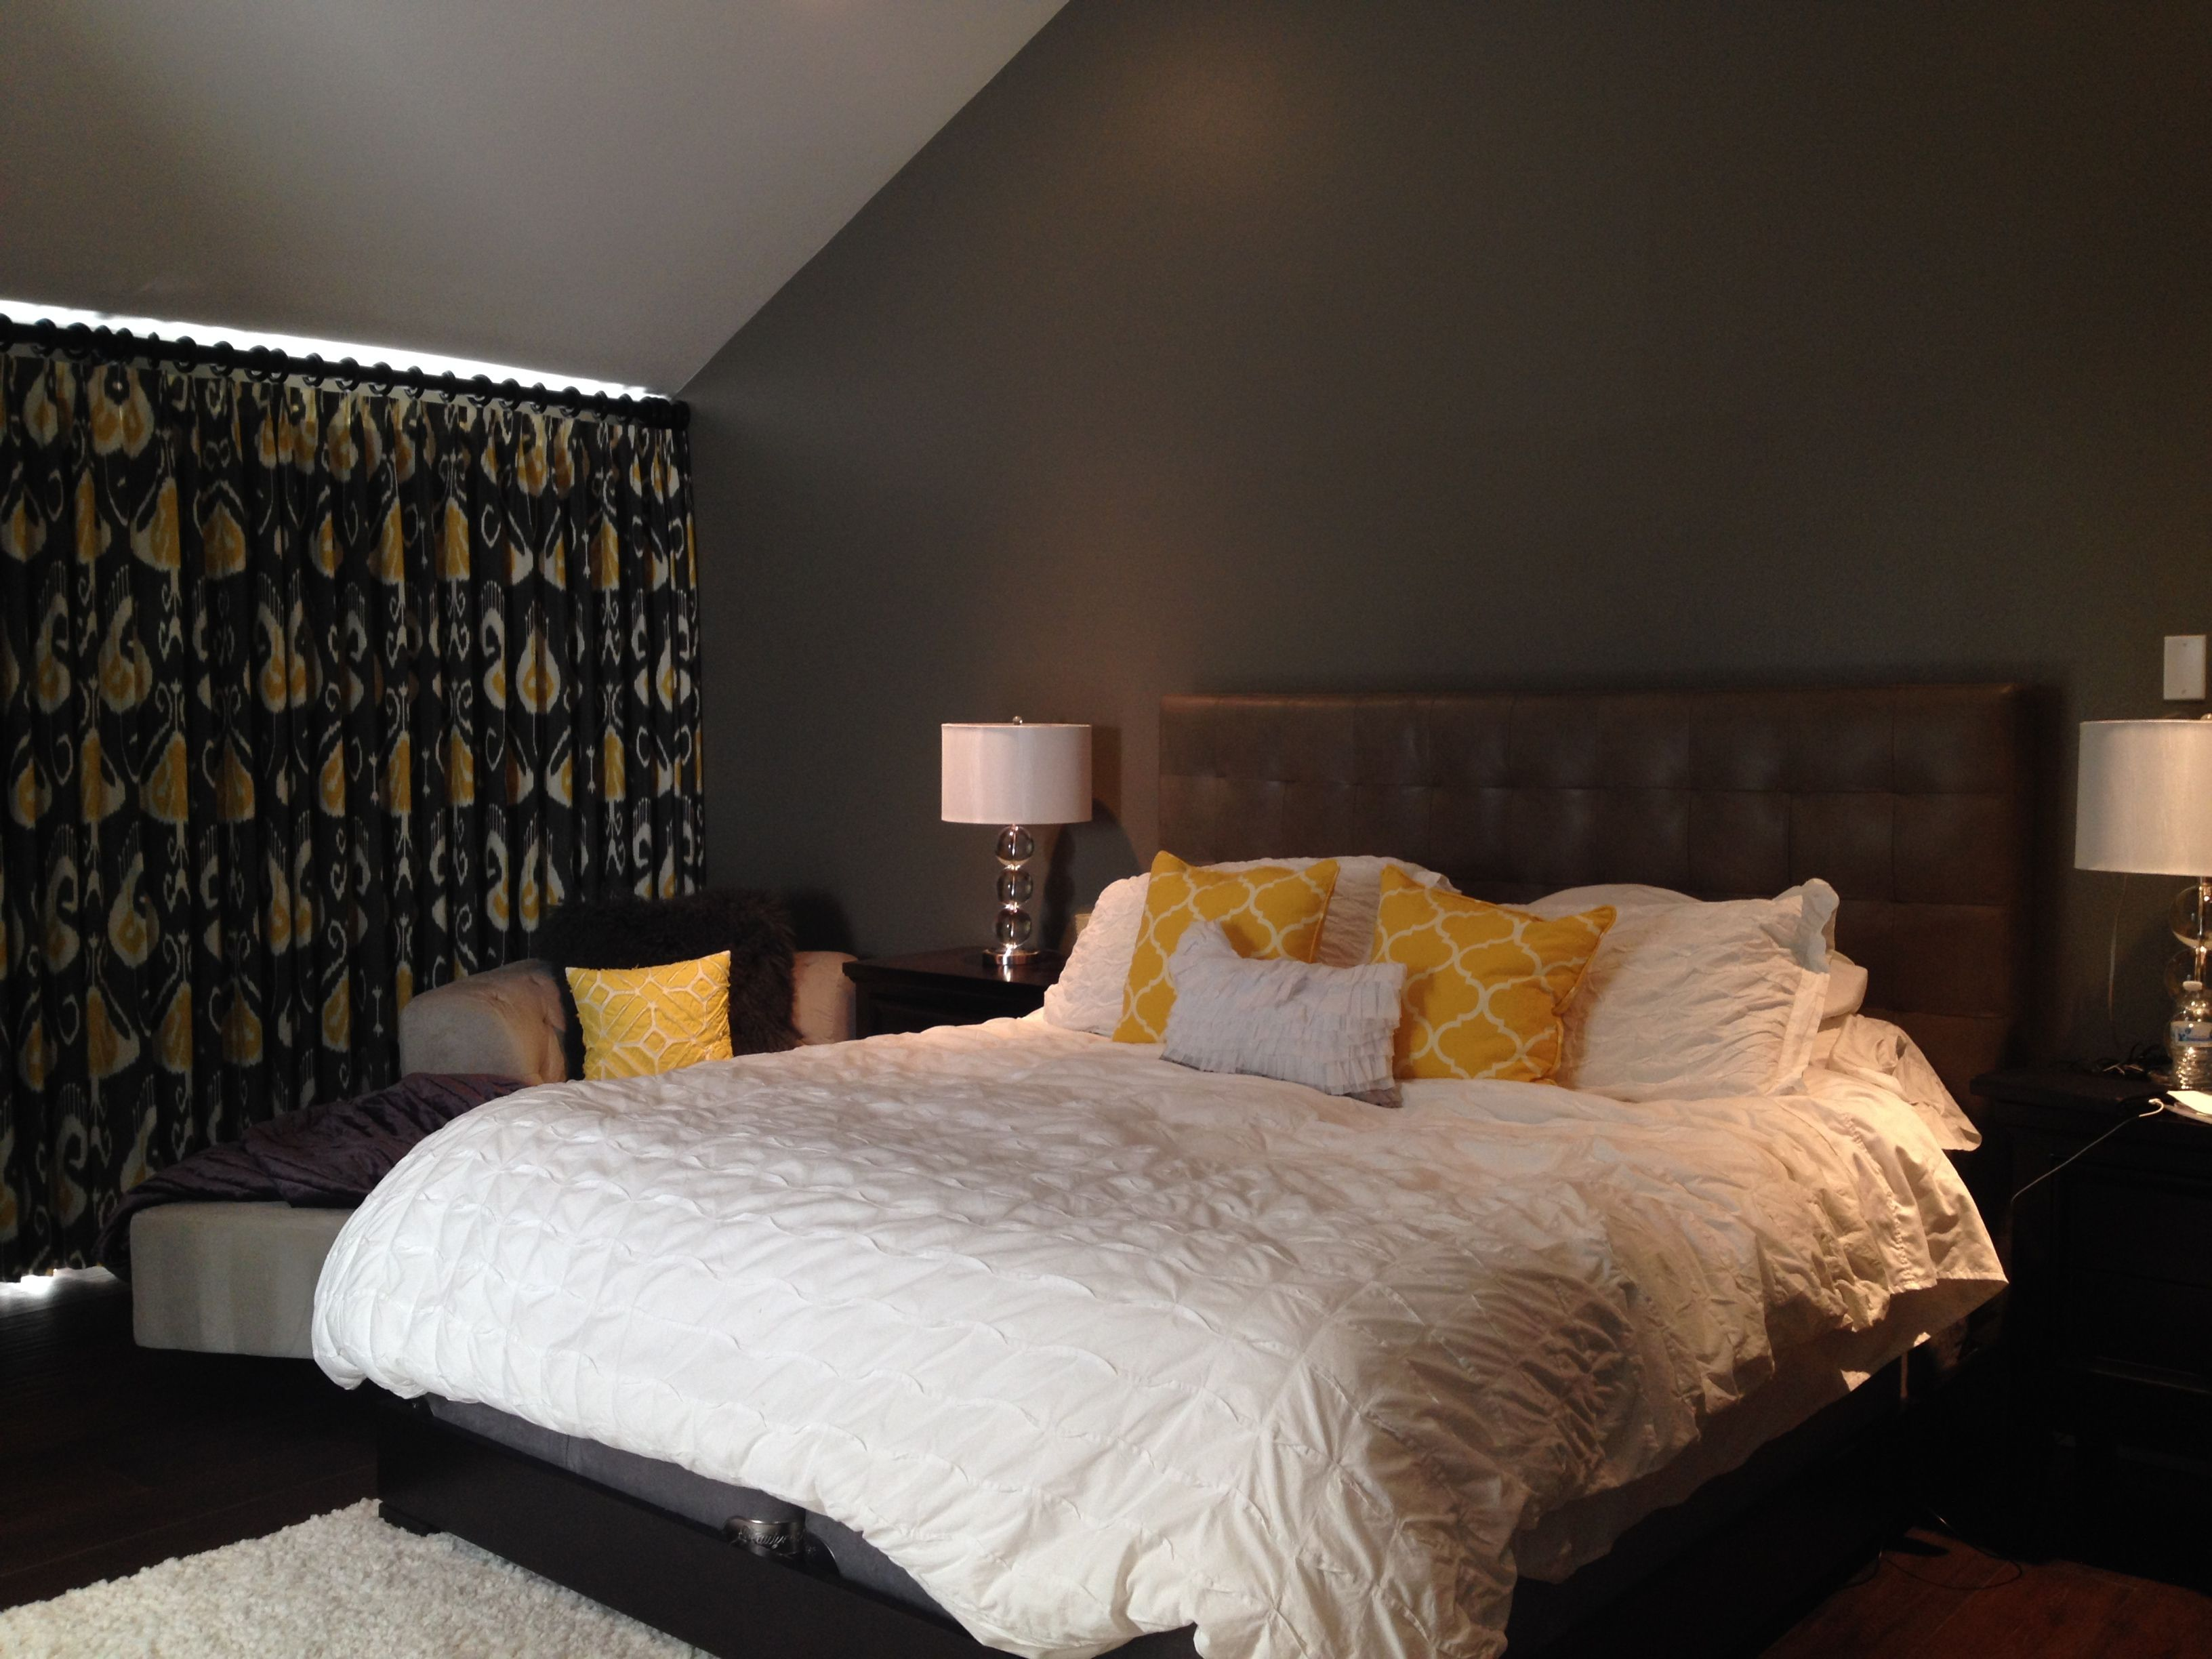 Our Mill Creek client picked out a room darkening floor to ceiling draperies for the master bedroom. How fun are their colors and style! #happyclient #budgetblinds